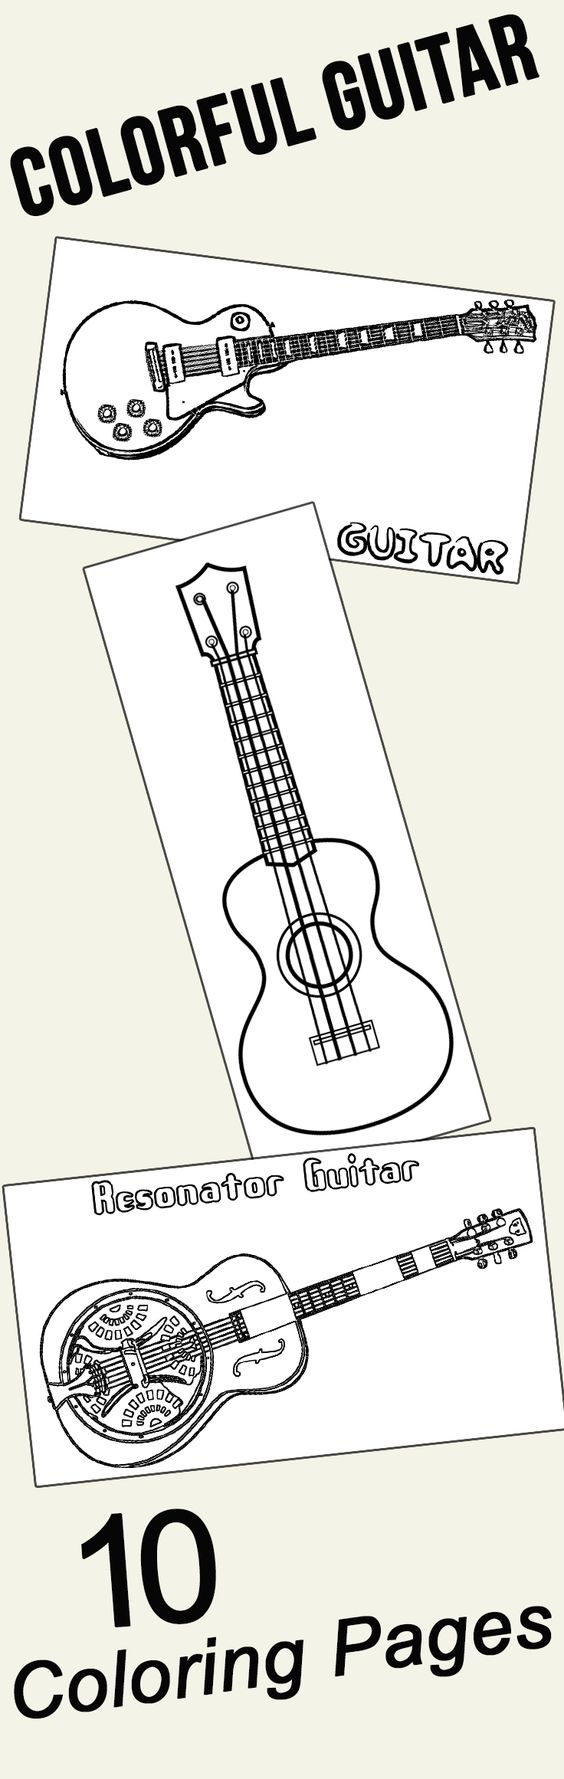 10 colorful guitar coloring pages for your little ones